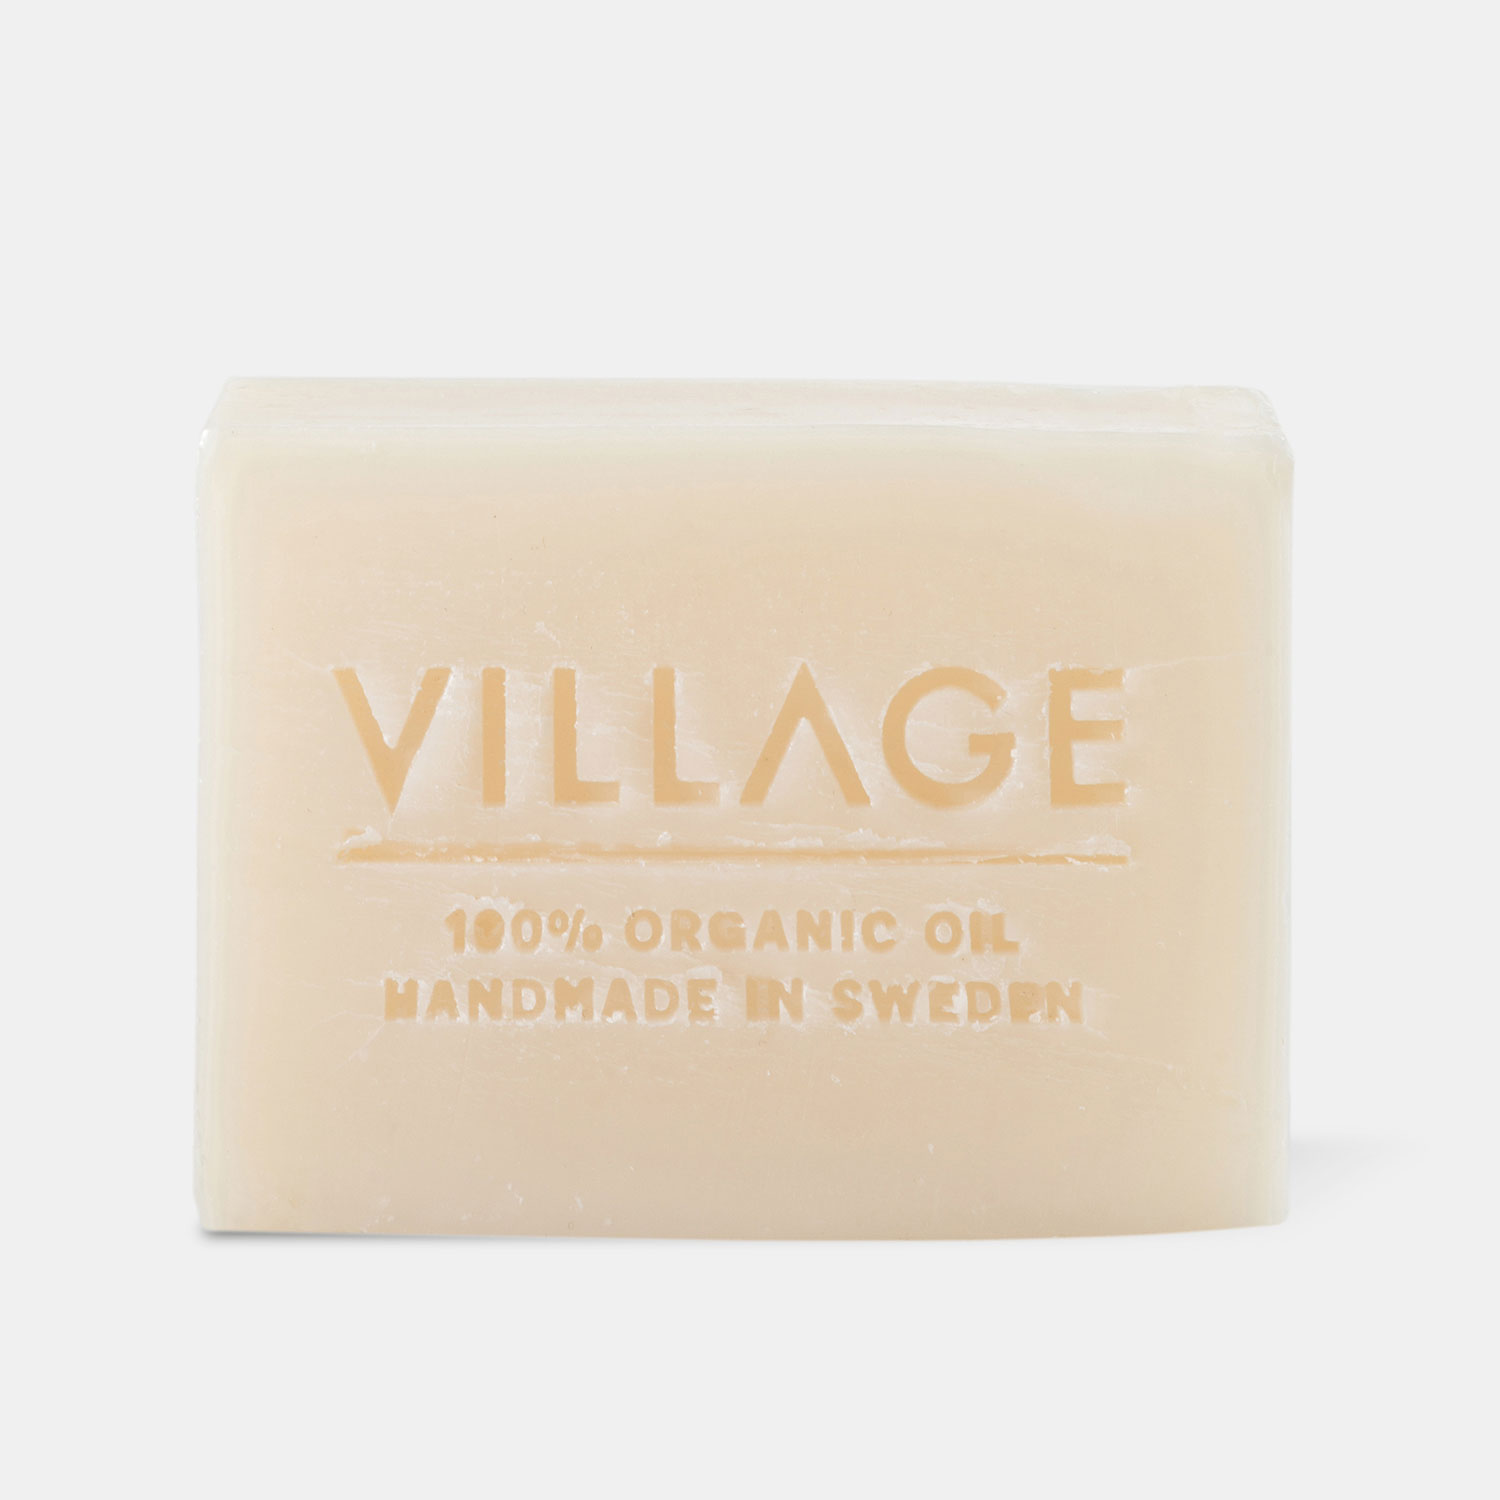 akermynta or wild mint soap bar gift from village swedish brand organic handmade hand and body wash